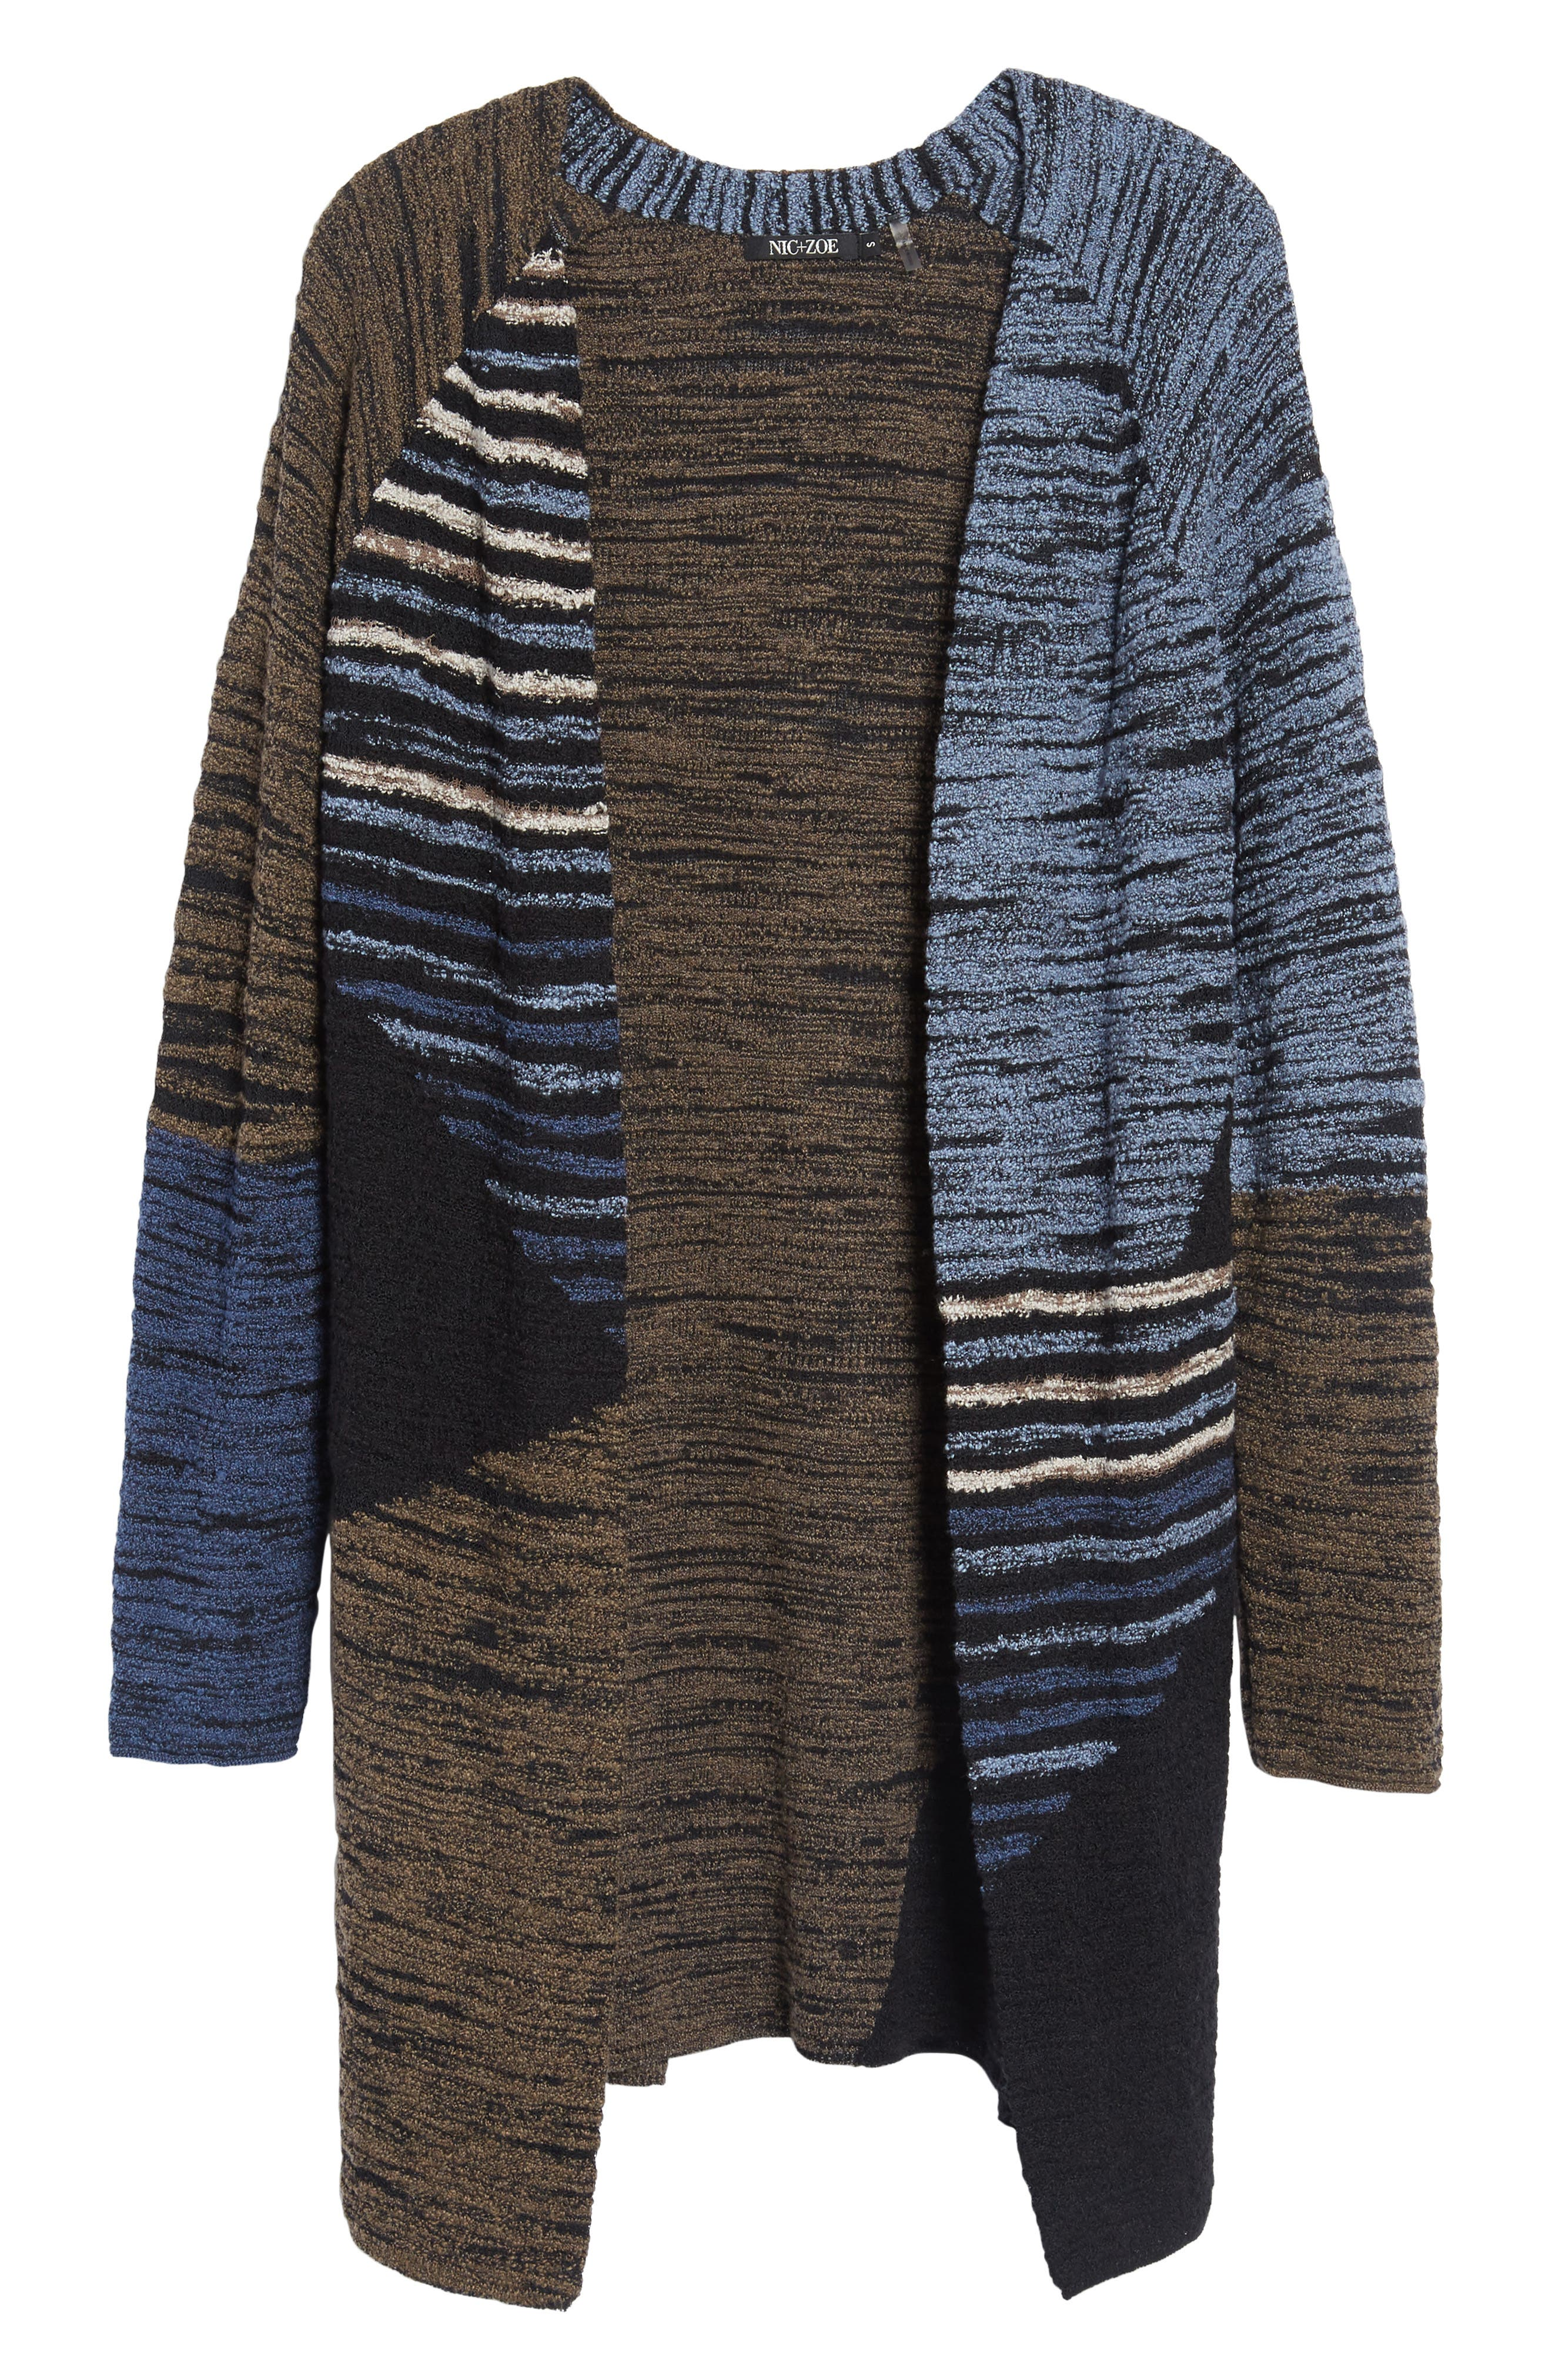 Layover Cardigan,                             Alternate thumbnail 6, color,                             499